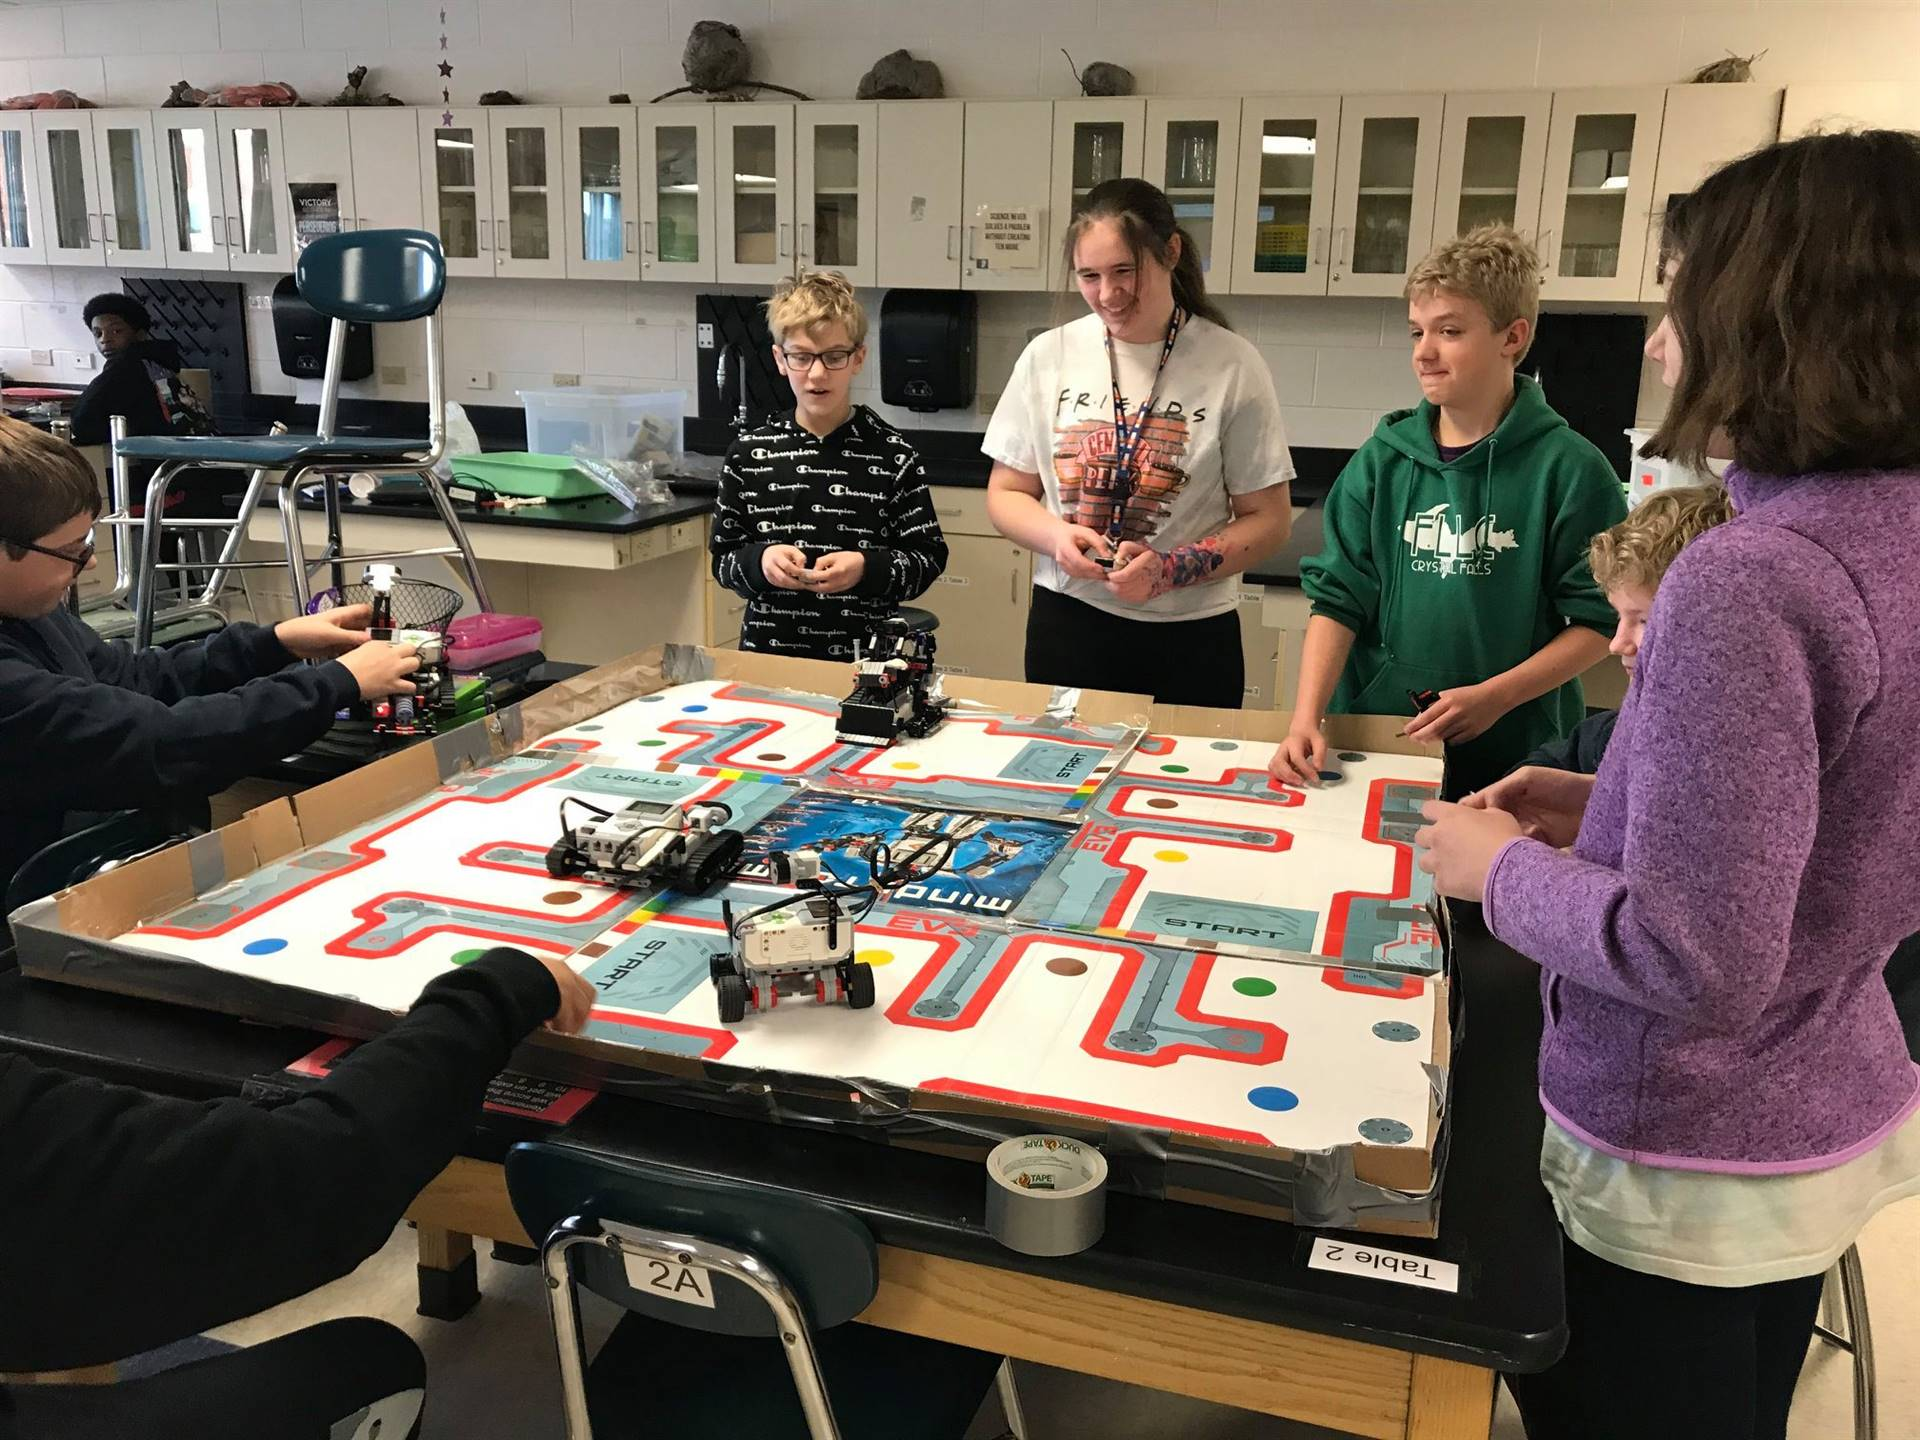 Students with Mindstorm Robots